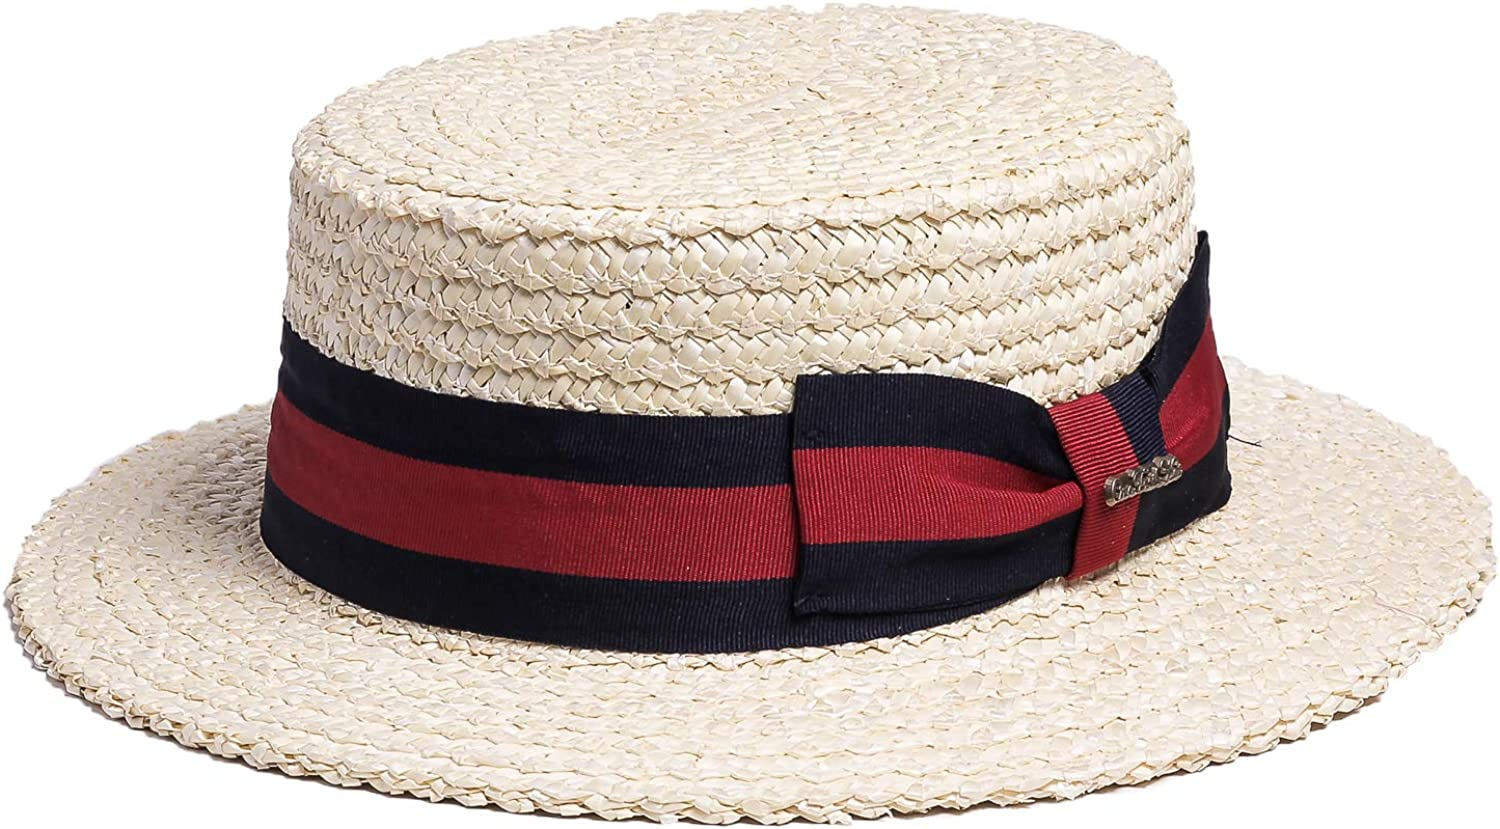 1940s Mens Hats | Fedora, Homburg, Pork Pie Hats Bellmora Mens Classic Straw Braid Boater Hat $49.99 AT vintagedancer.com